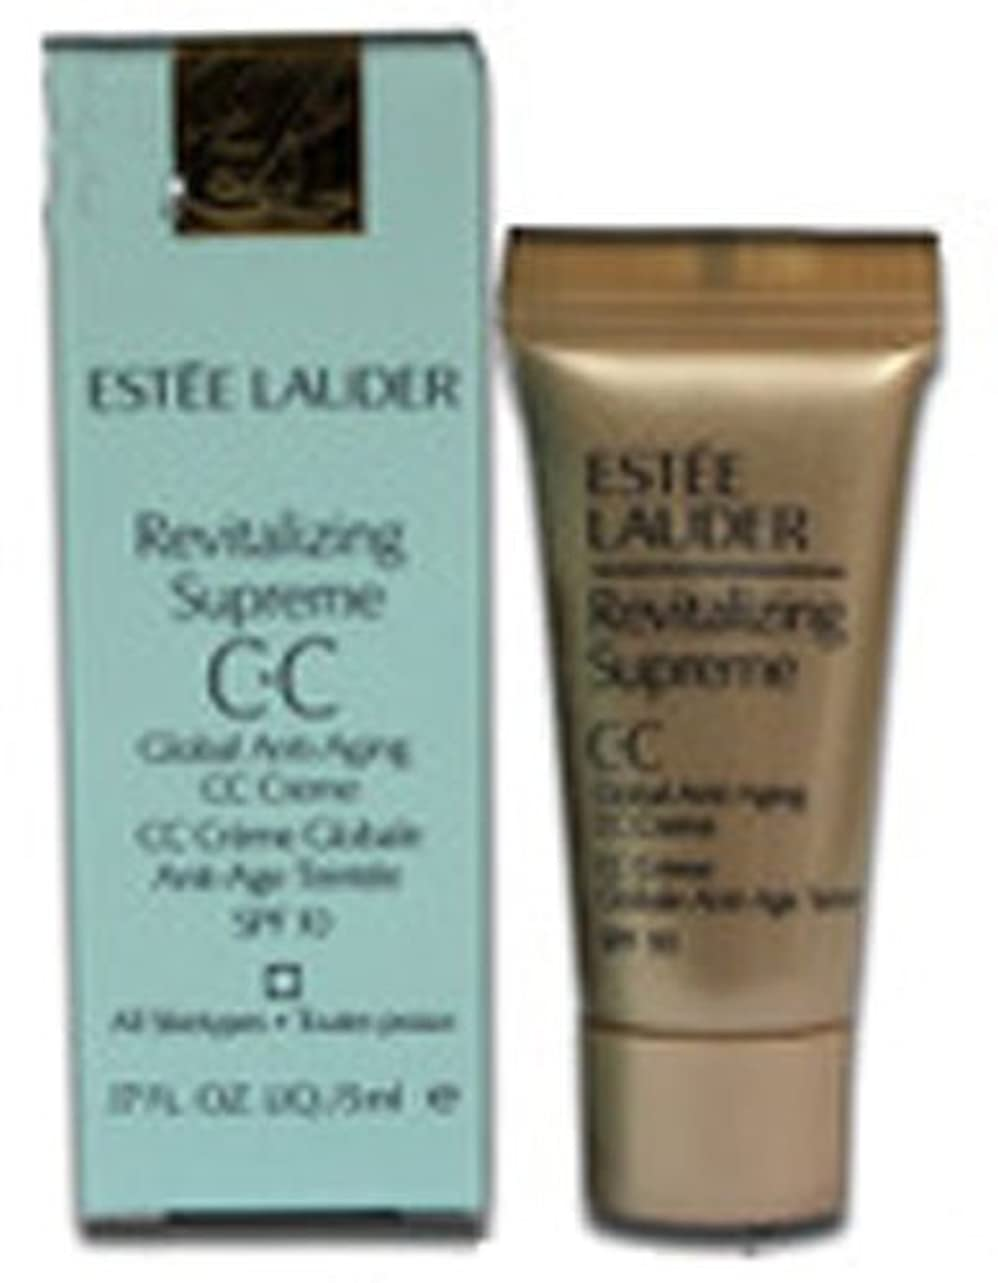 薄める振る舞い蜂エスティローダー REVITALIZING SUPREME GLOBAL AG C?C CREME SPF10 SPF10 5ml ESTEE LAUDER [並行輸入品]